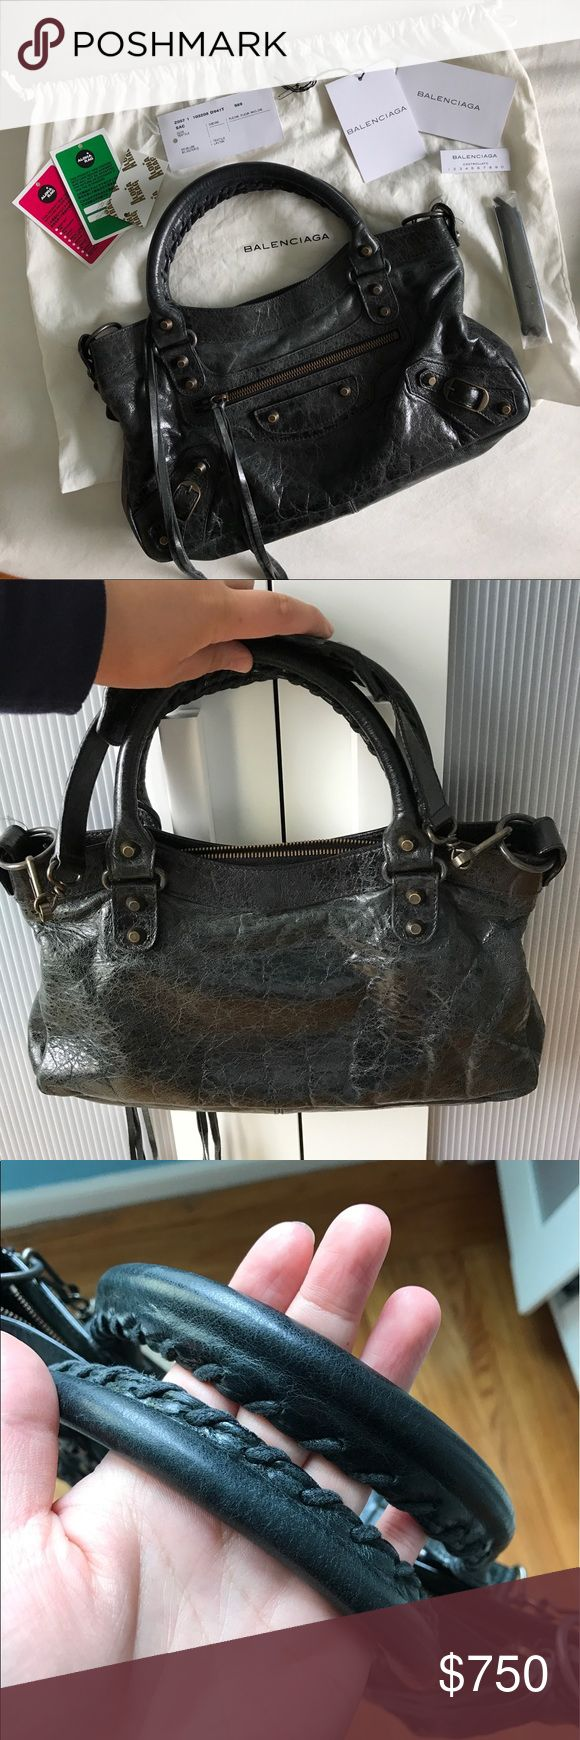 """2007 S/S Balenciaga Black First Classic Arena Bag Authentic, pre-owned 2007 Balenciaga First in Black. Good condition. Classic slouchy leather from Balenciaga. Some normal wear on corners (see pictures). No major damage. All tags, cards, and dust bag included. Retails around $1300.  13x7x2.5"""" handle drop 4"""" strap drop 8"""" Balenciaga Bags Shoulder Bags"""